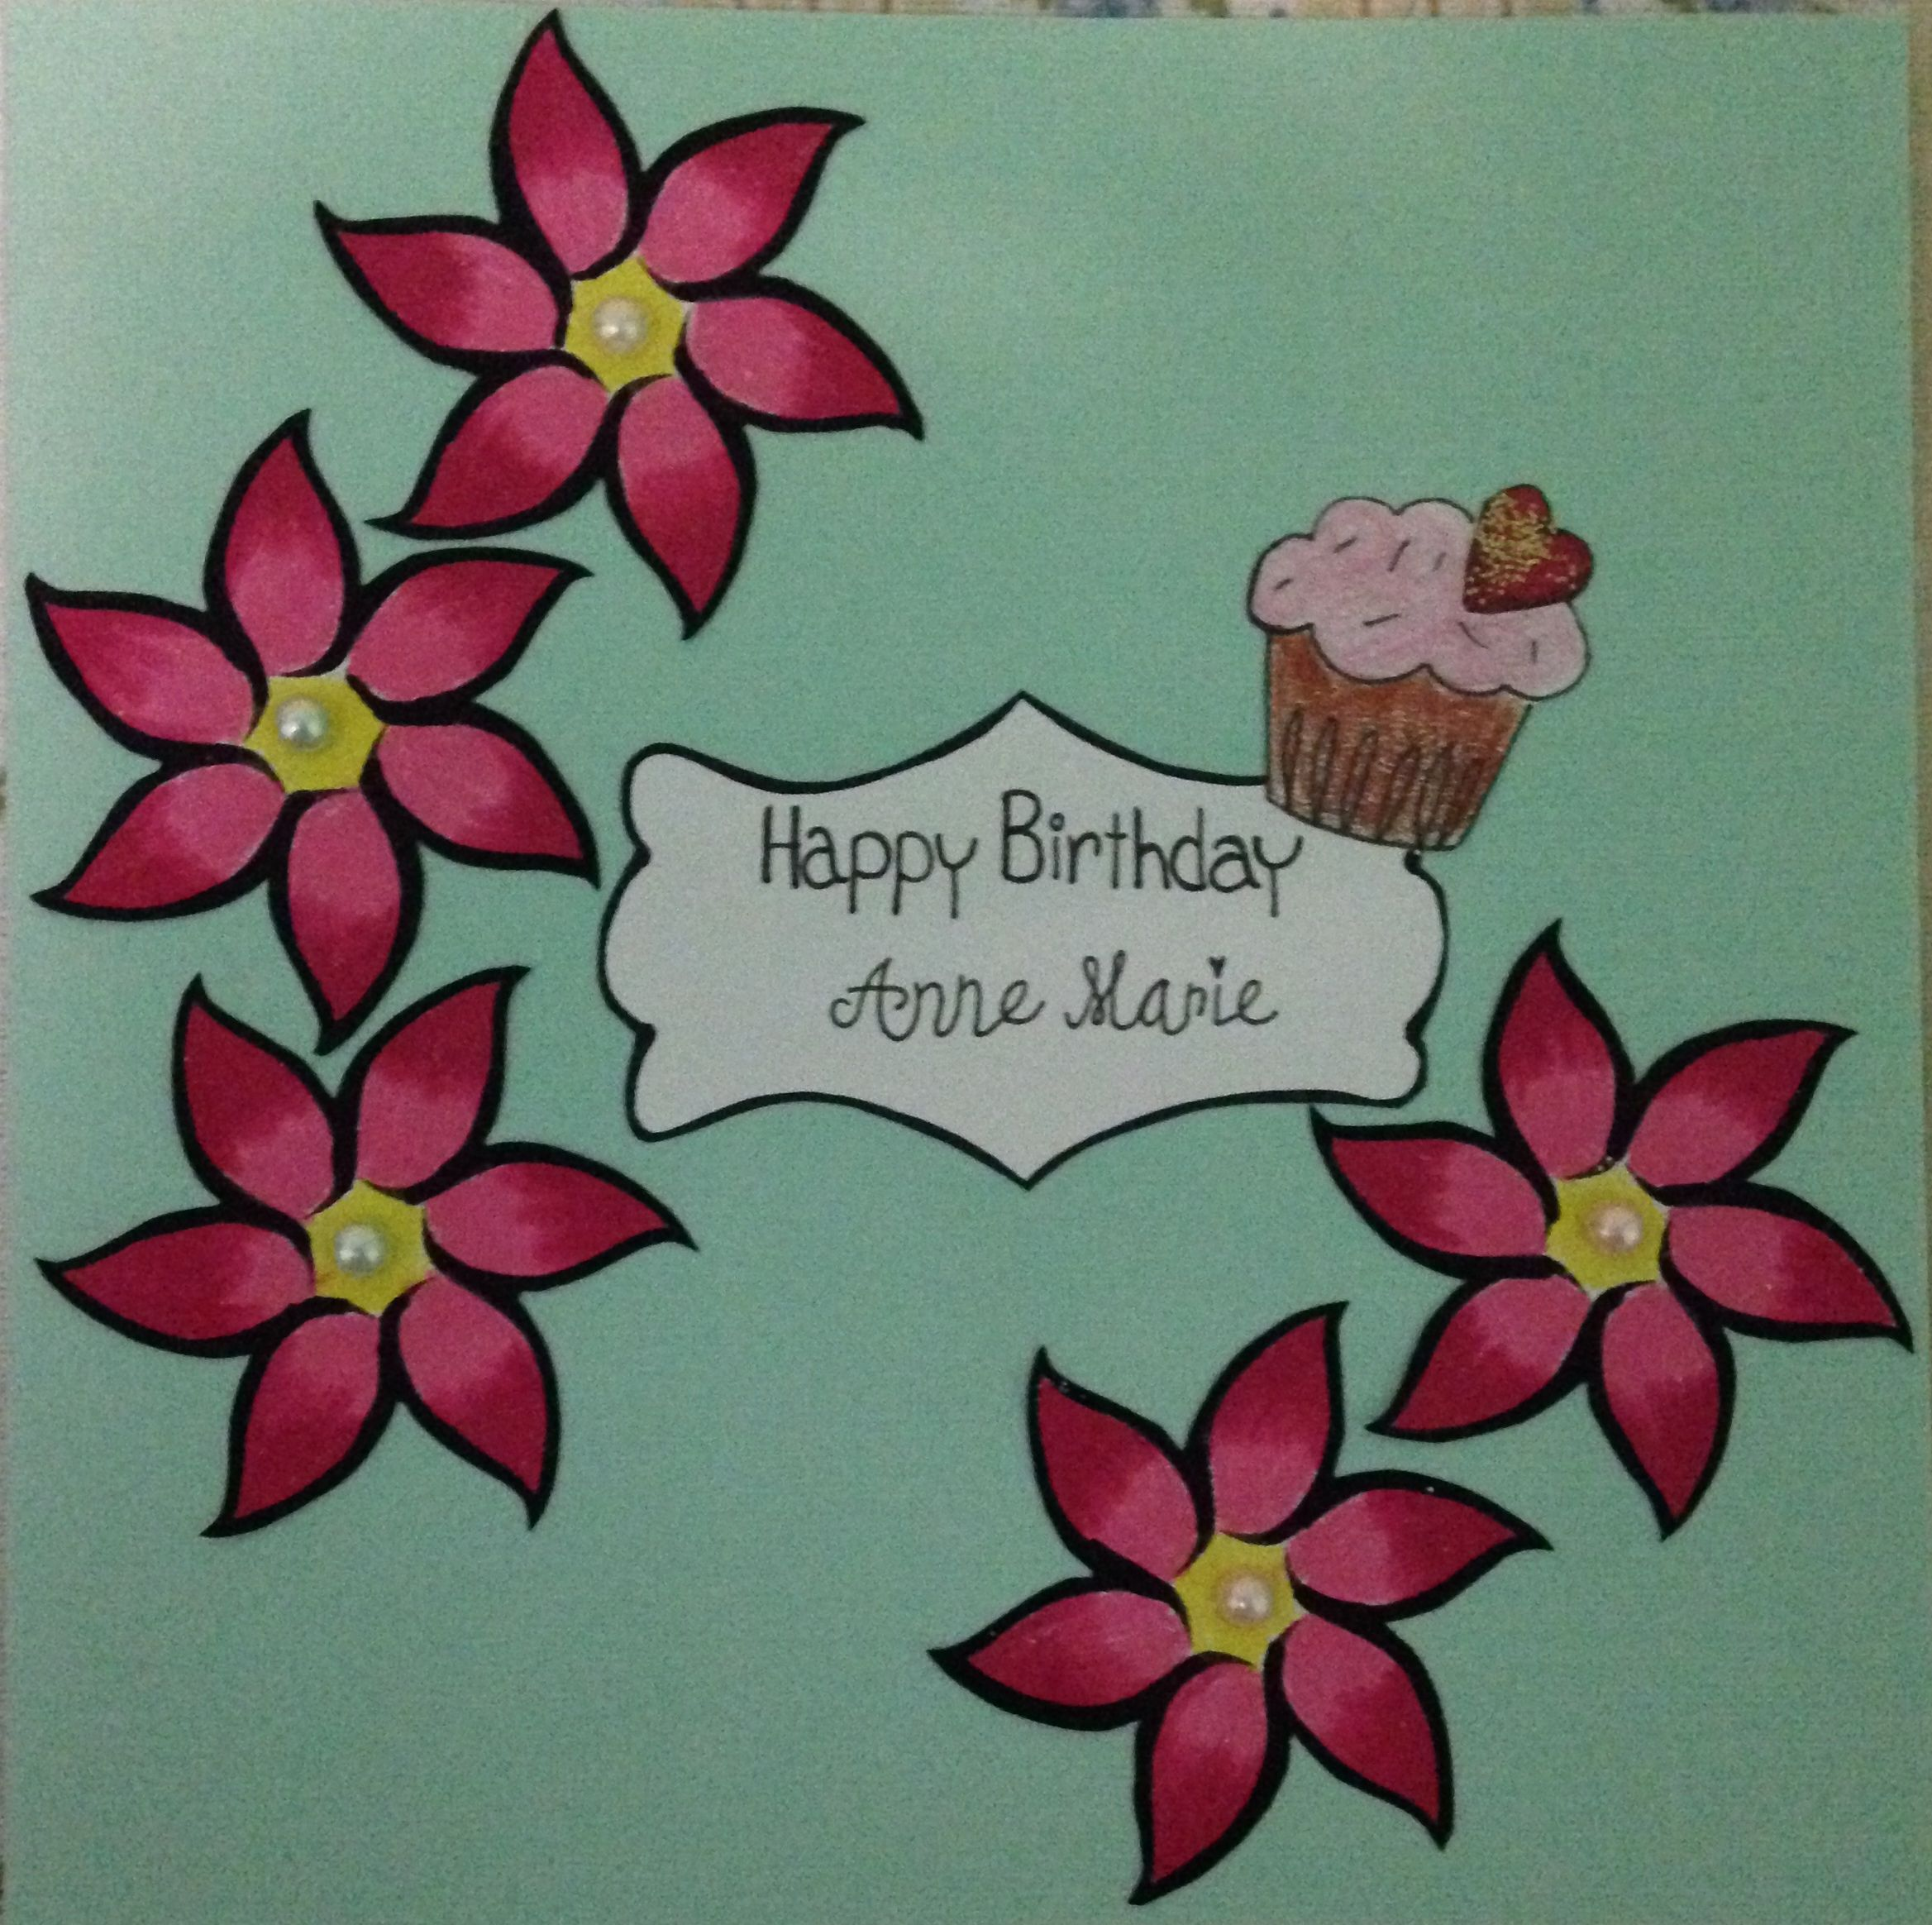 Happy birthday card cardstock from michaels greeting cards find this pin and more on greeting cards cardstock from michaels m4hsunfo